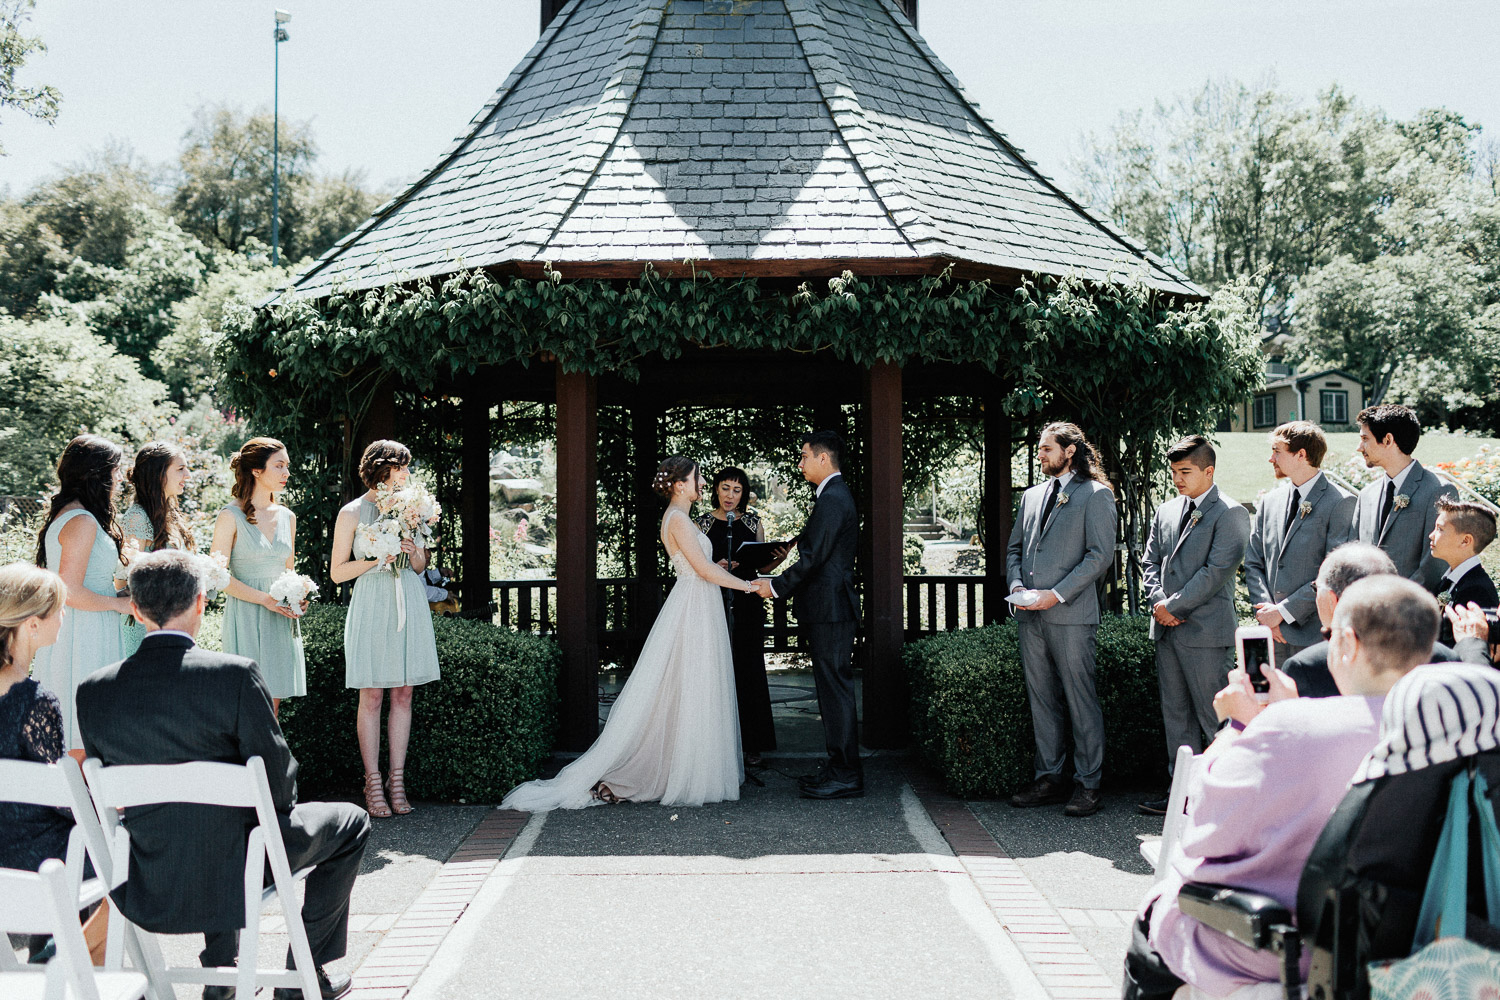 Image of the start of wedding ceremony